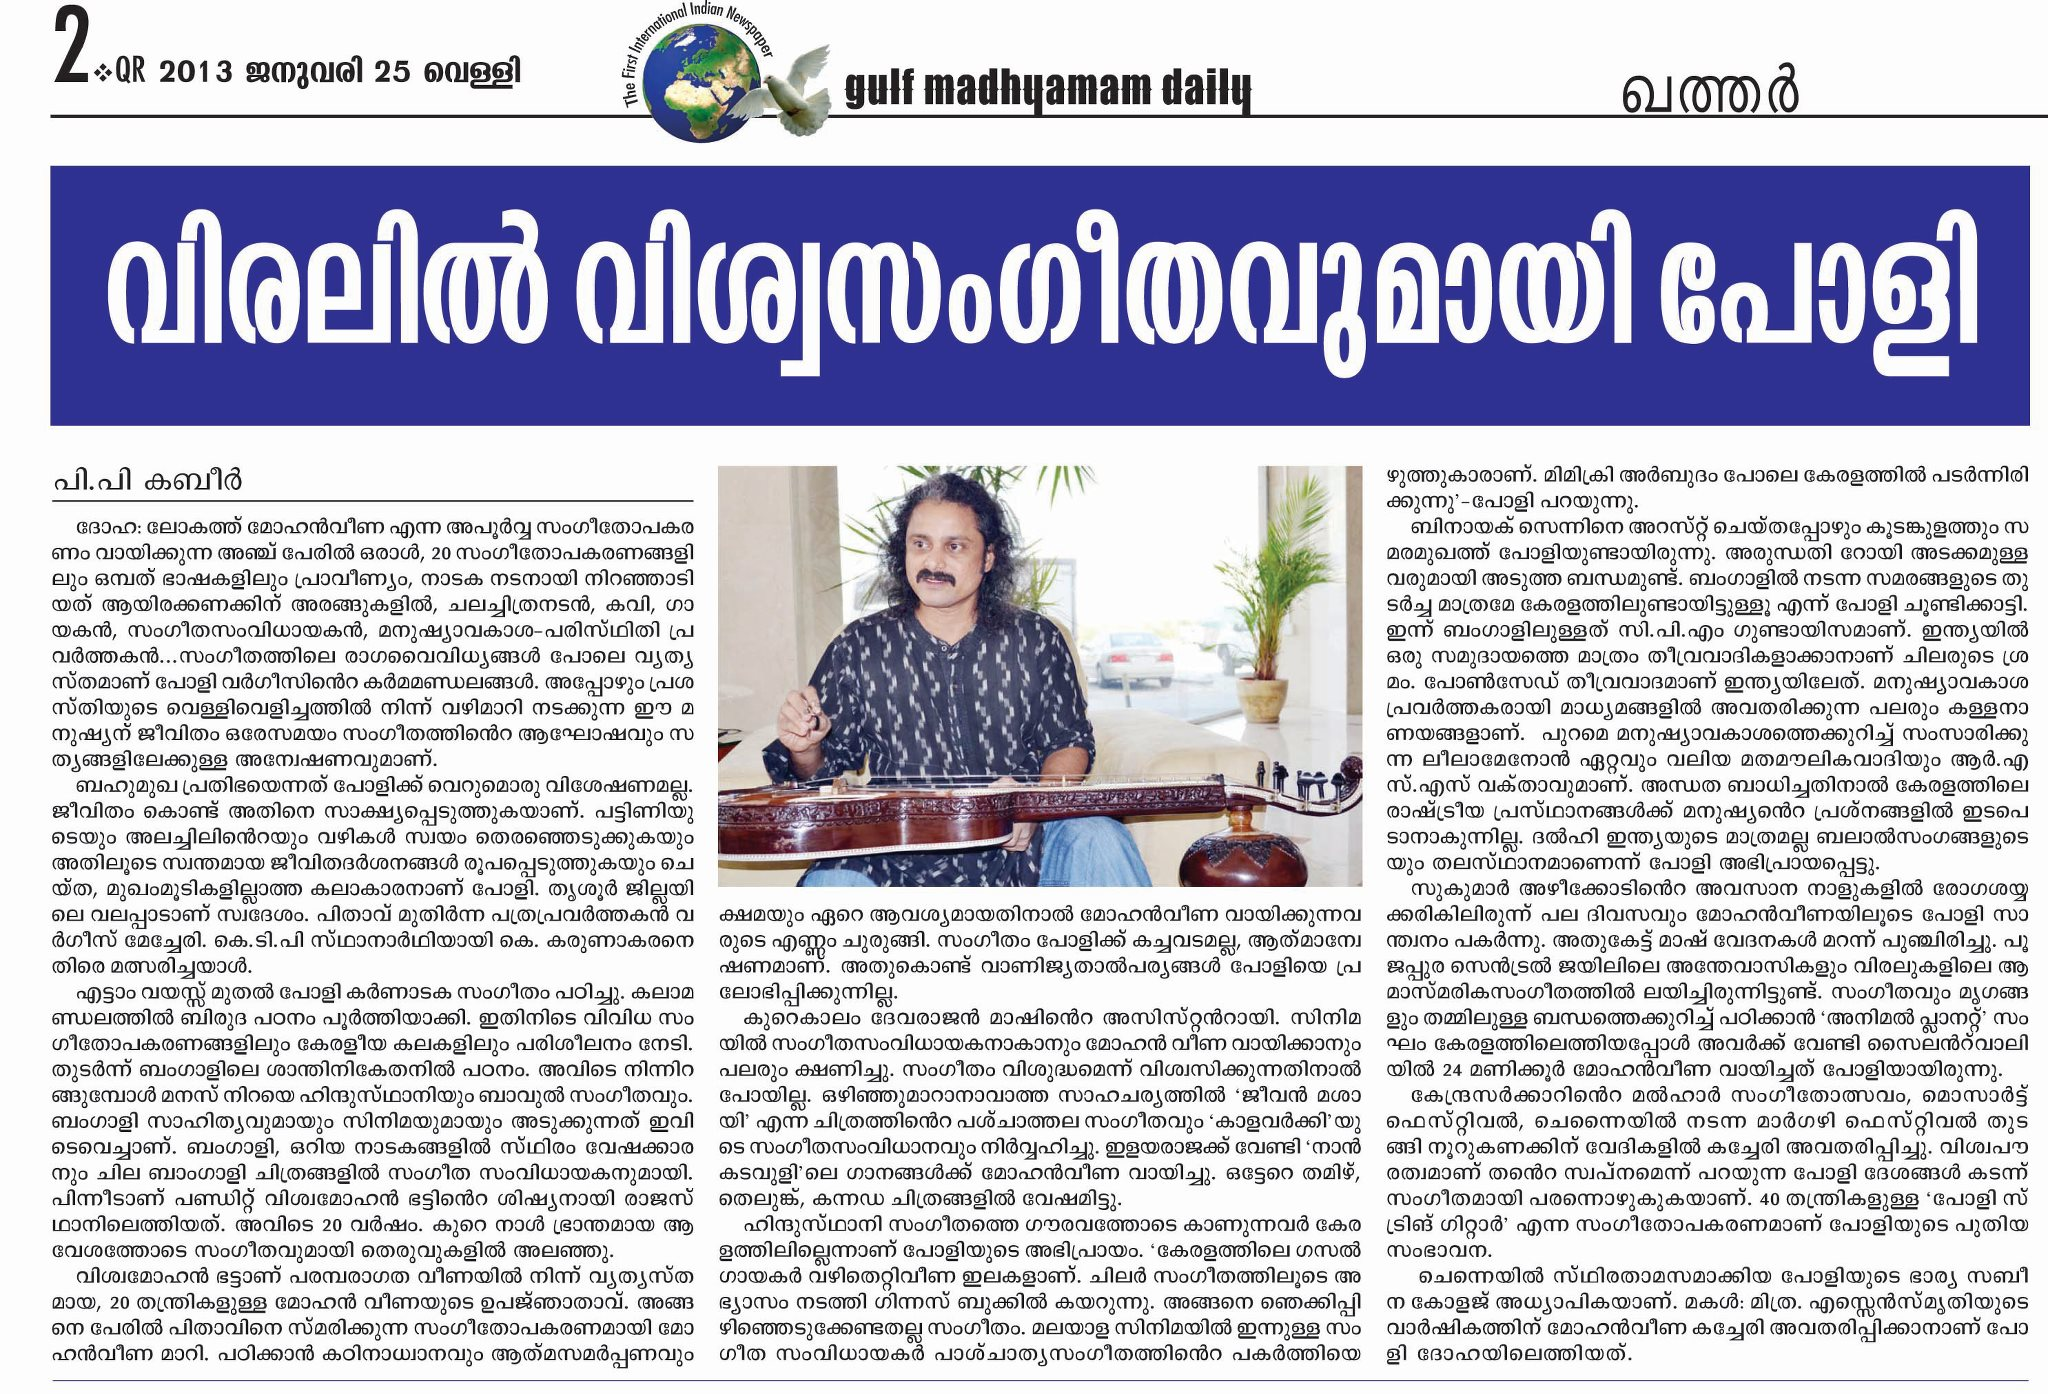 Gulf Madhyam Daily on 25 January 2013